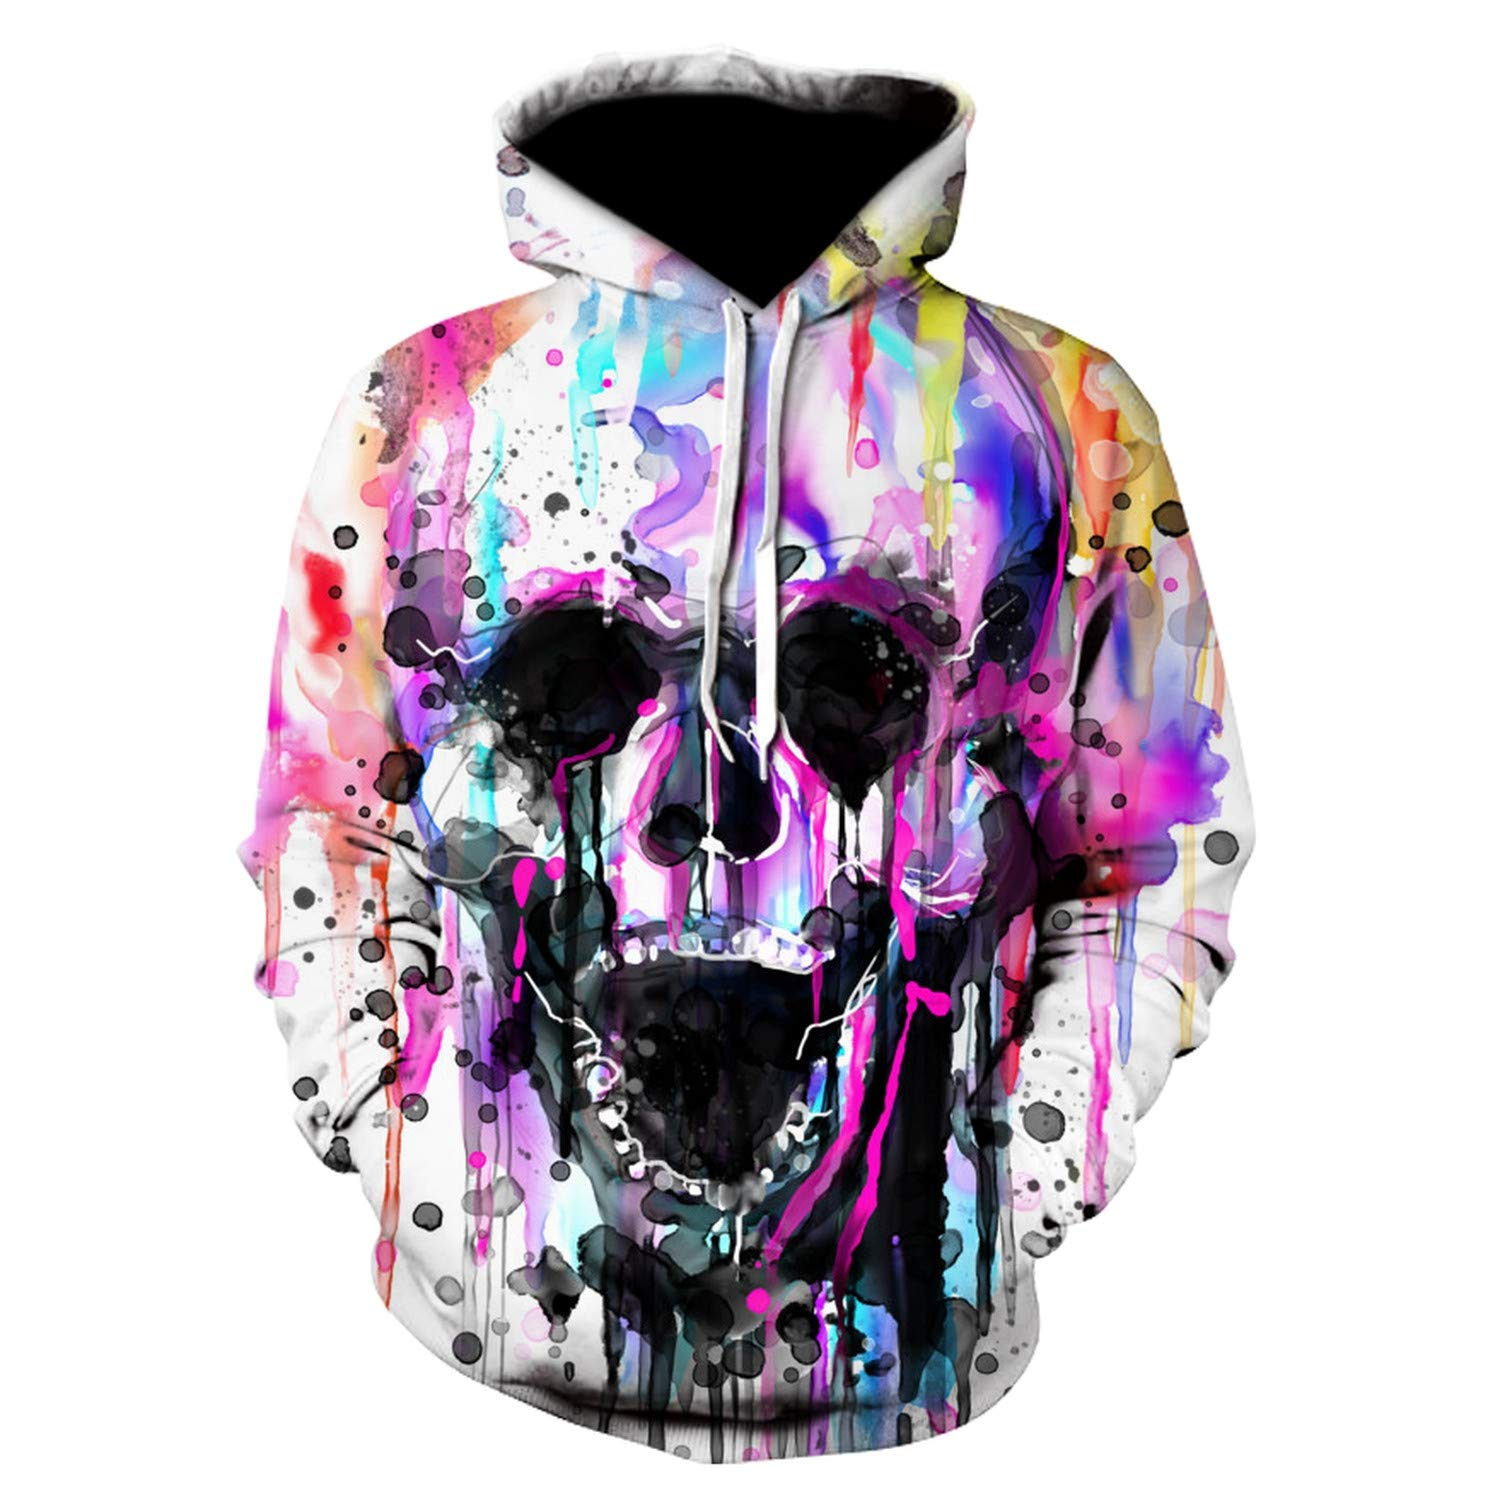 Gutuomy Women Men 3D Sweatshirts Pullover Novelty Tracksuit Fashion Hooded Streetwear Autumn Casual Jacket Picture Color Xs